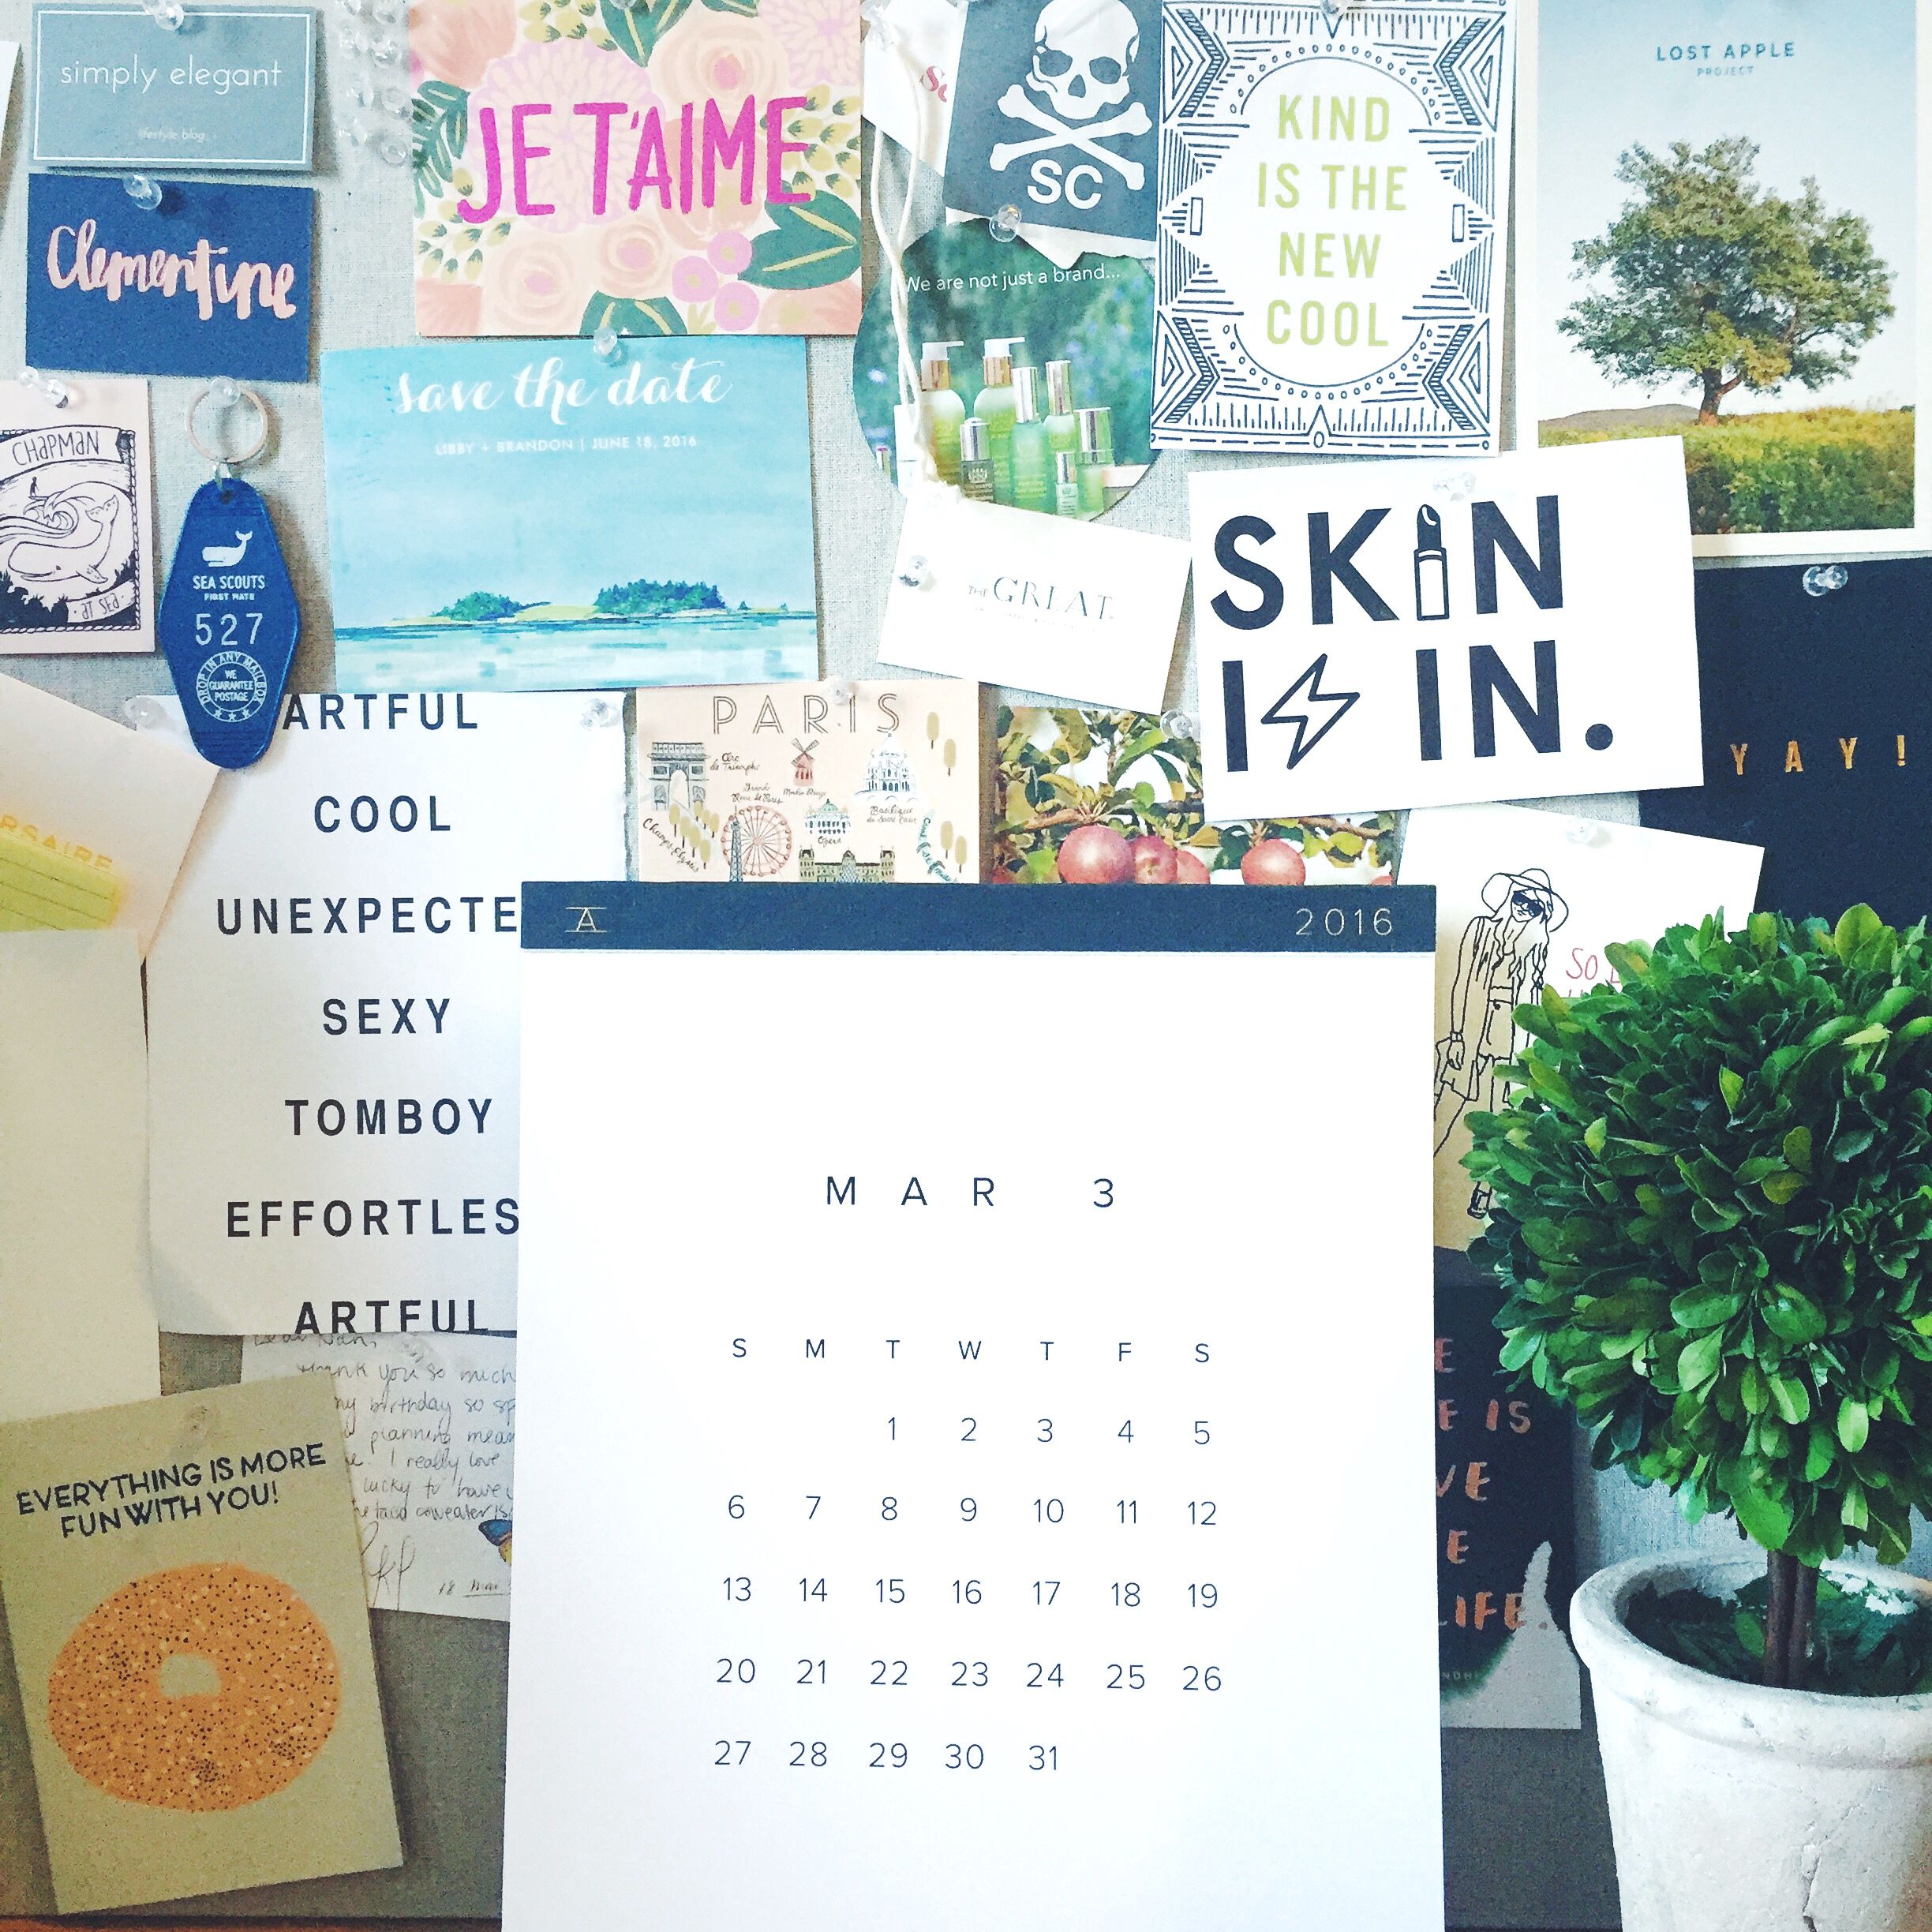 Appointed Wall Calendar.     Design Darling Boxwood Topiary.     Various Cards from Clementine Store.